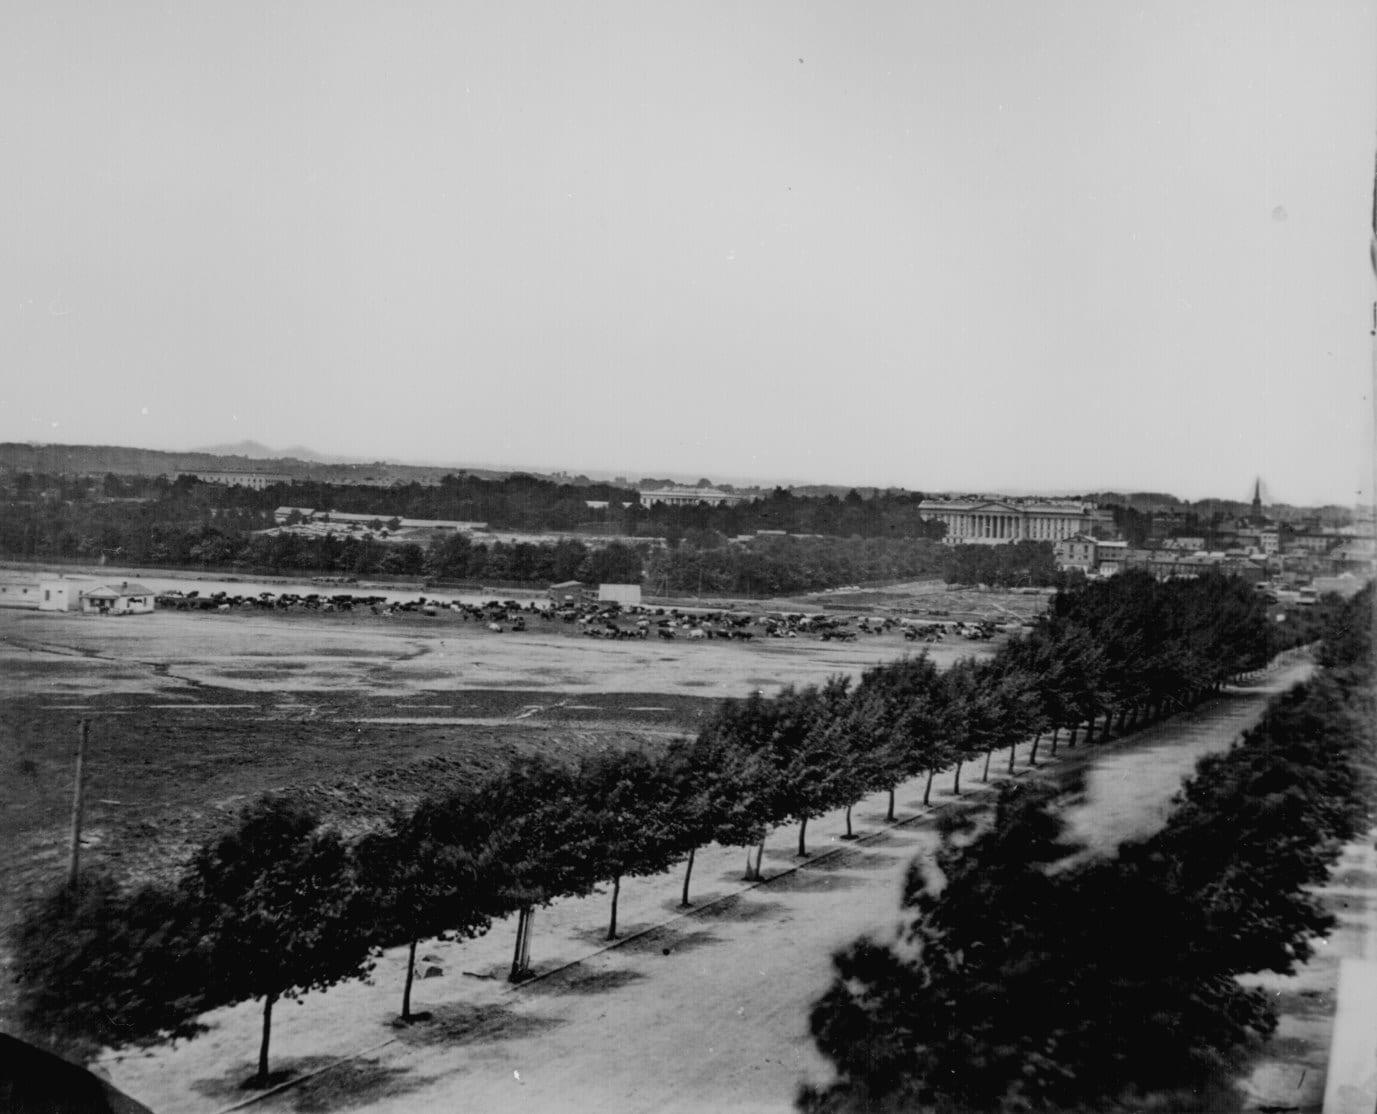 General view of the city from the south toward the Treasury Building and the White House. Cows are grazing near Tiber Creek.